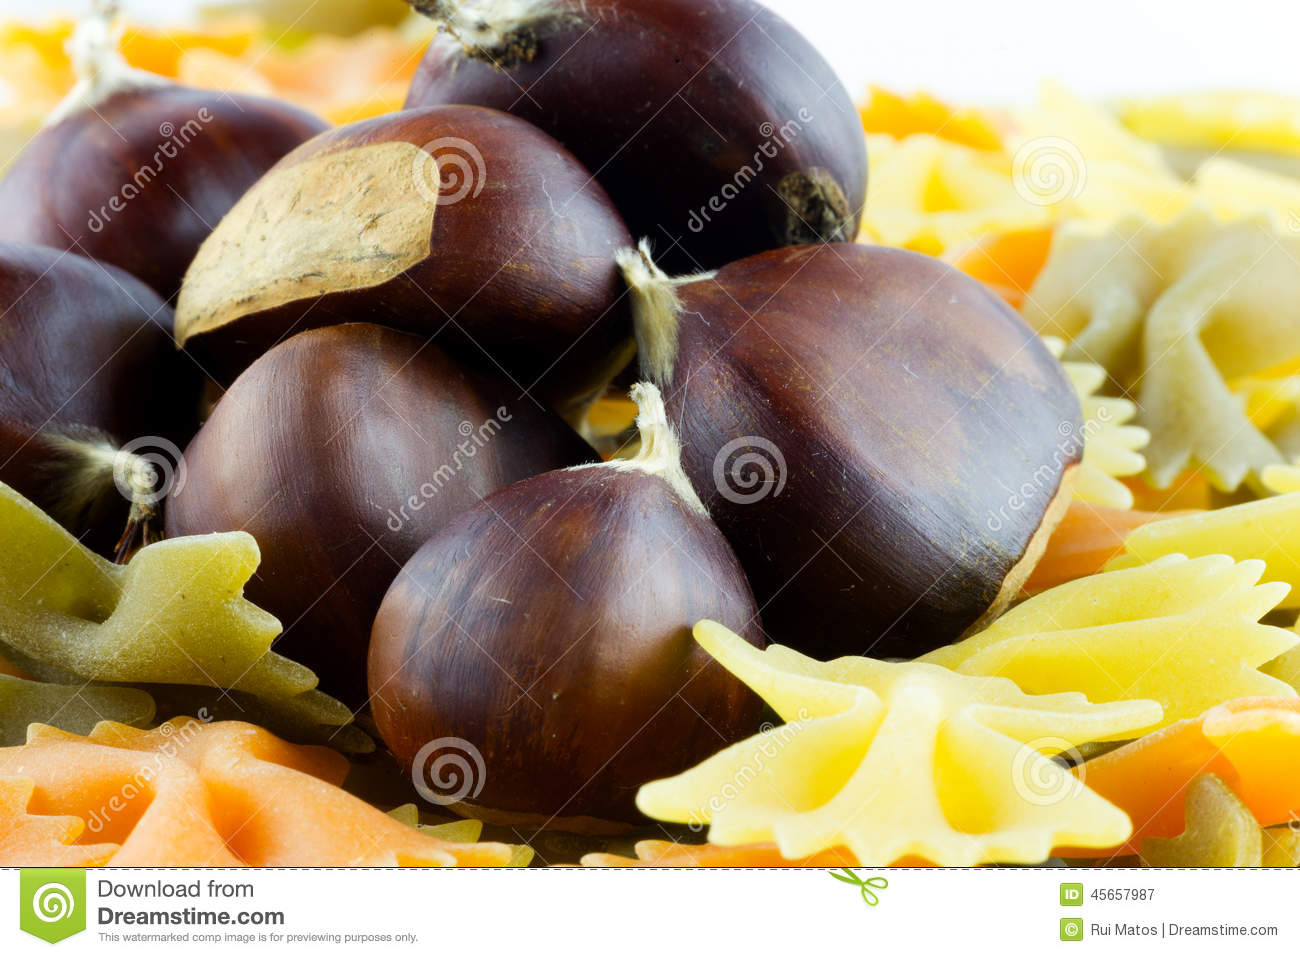 how to cook raw chestnuts